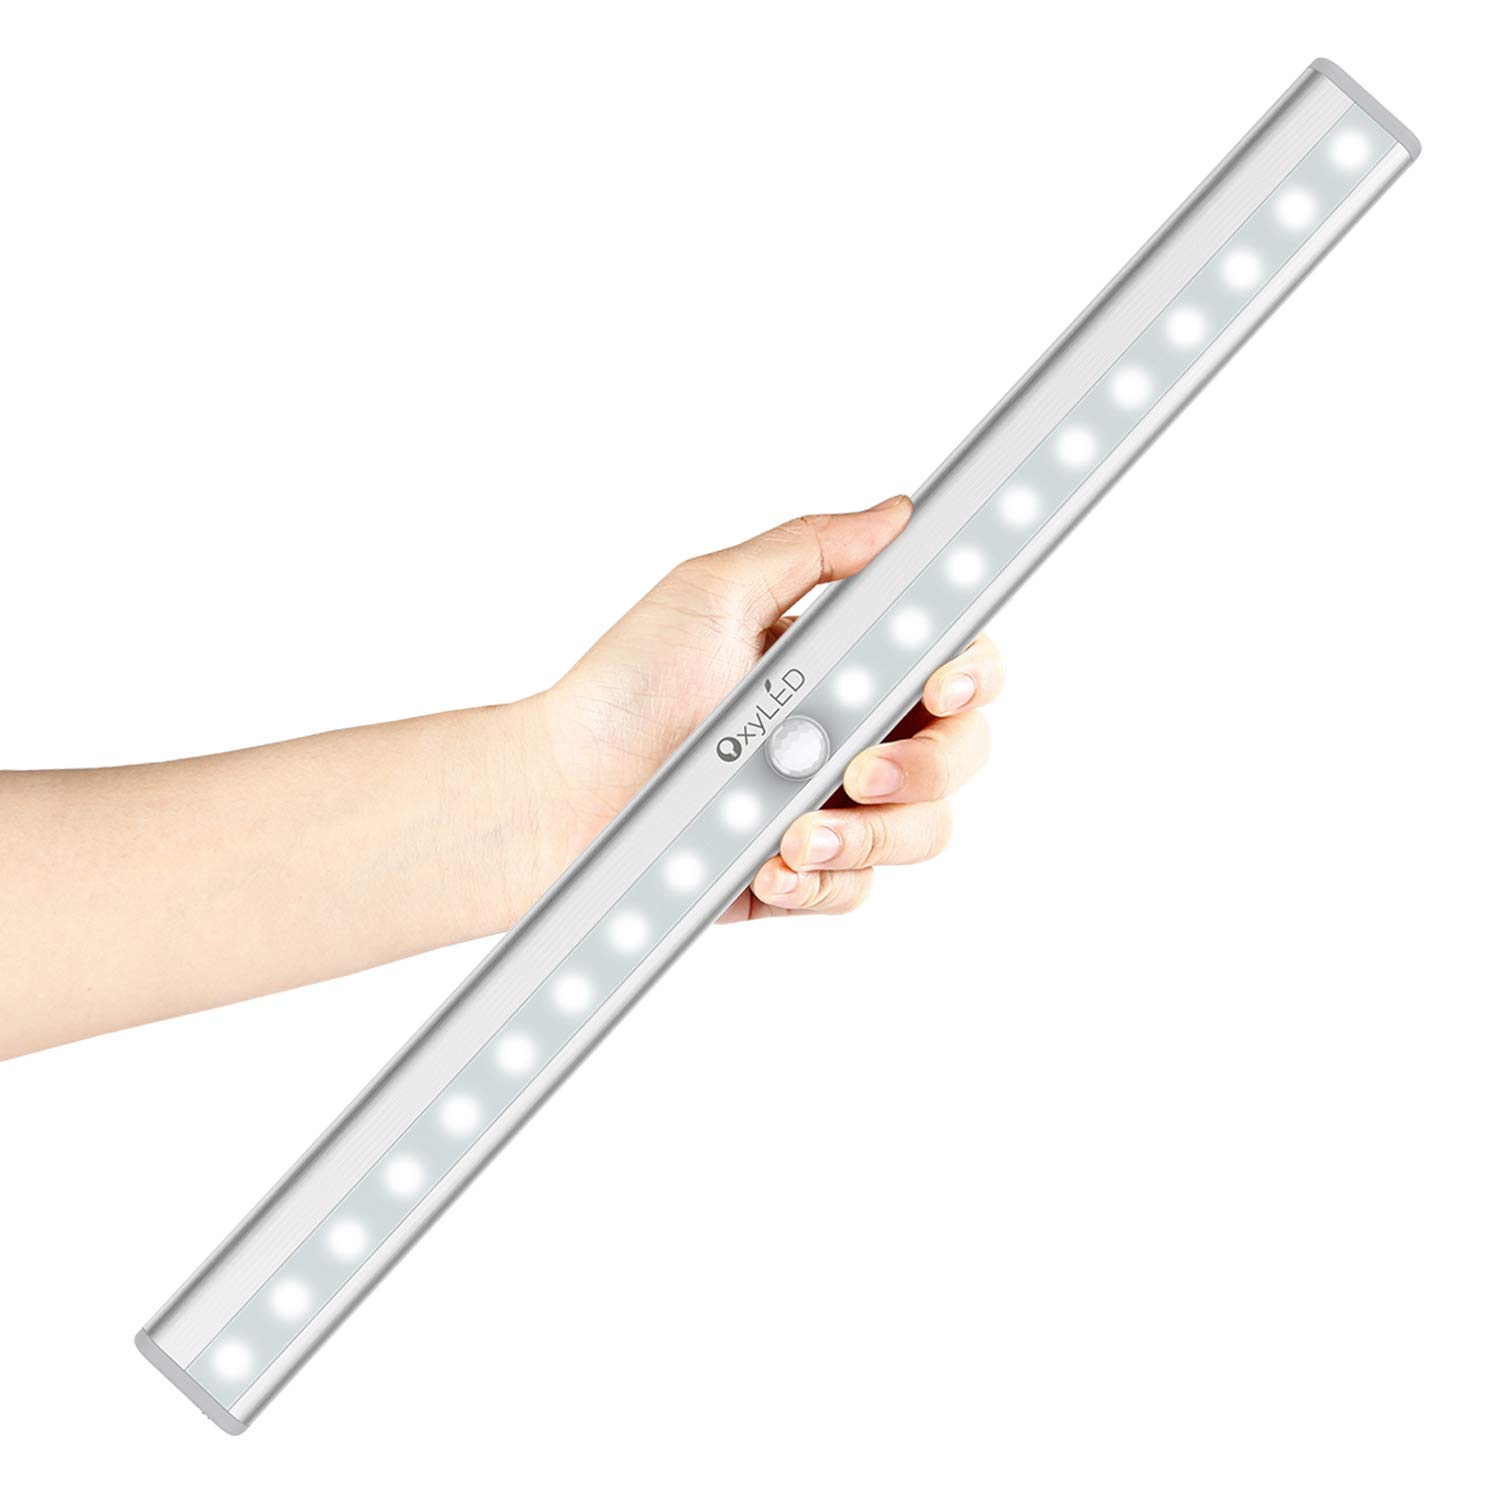 OxyLED Motion Sensor Closet Lights, Wardrobe Light USB Rechargeable Under Cabinet Lightening, Stick-on Cordless 20 LED Night Light Emergency light, Safe Lights with Magnetic Strip, 1 Pack, T-02S by OxyLED (Image #1)